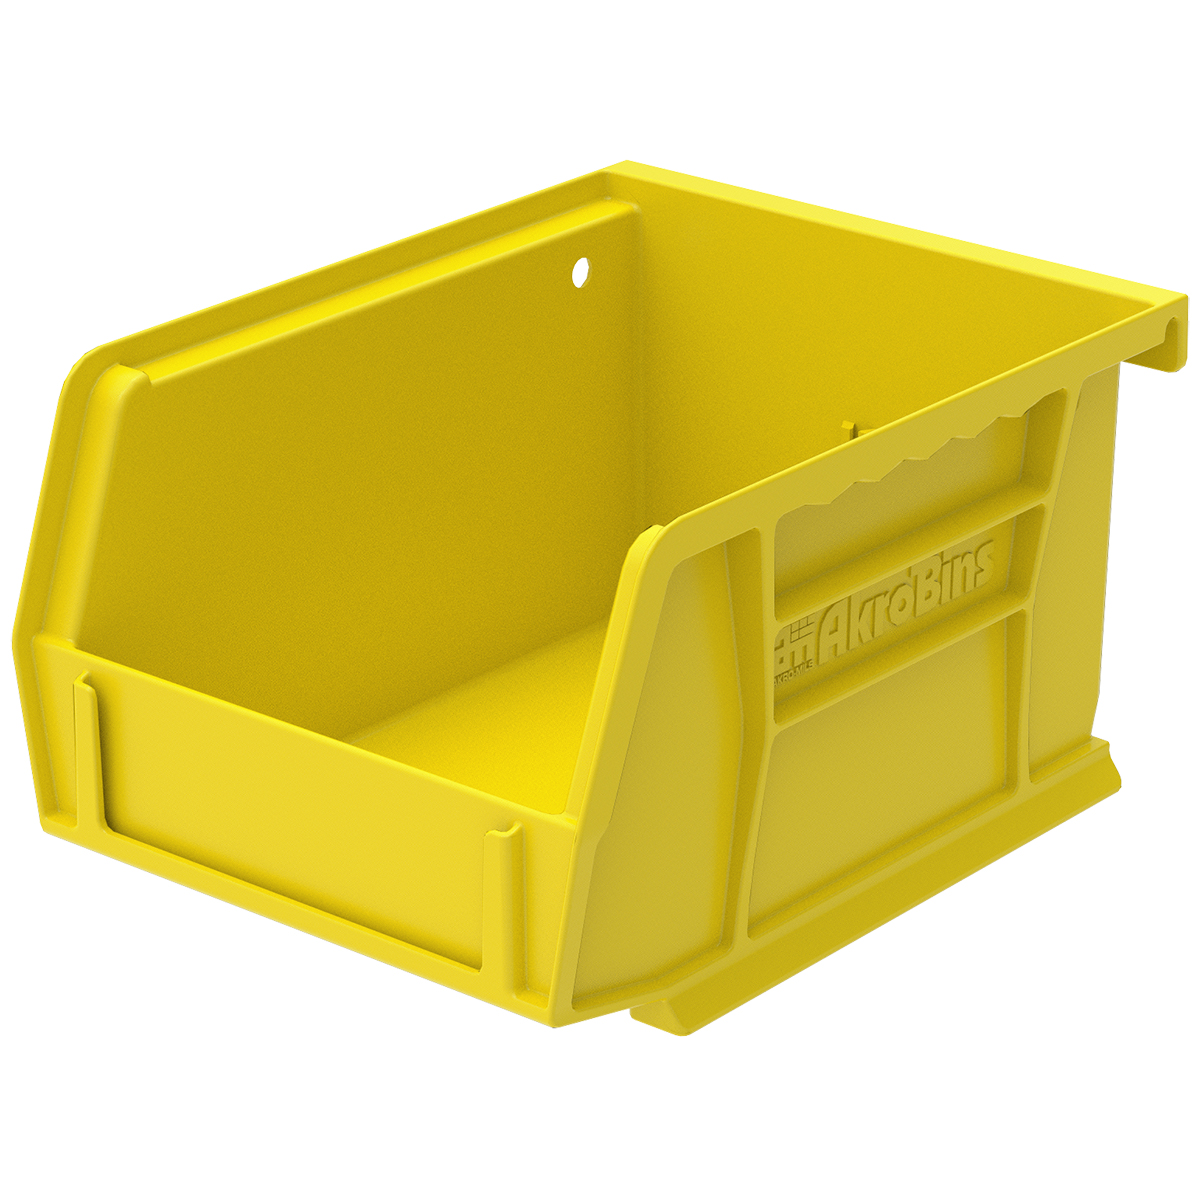 AkroBin 5-3/8 x 4-1/8 x 3, Yellow (30210YELLO).  This item sold in carton quantities of 24.